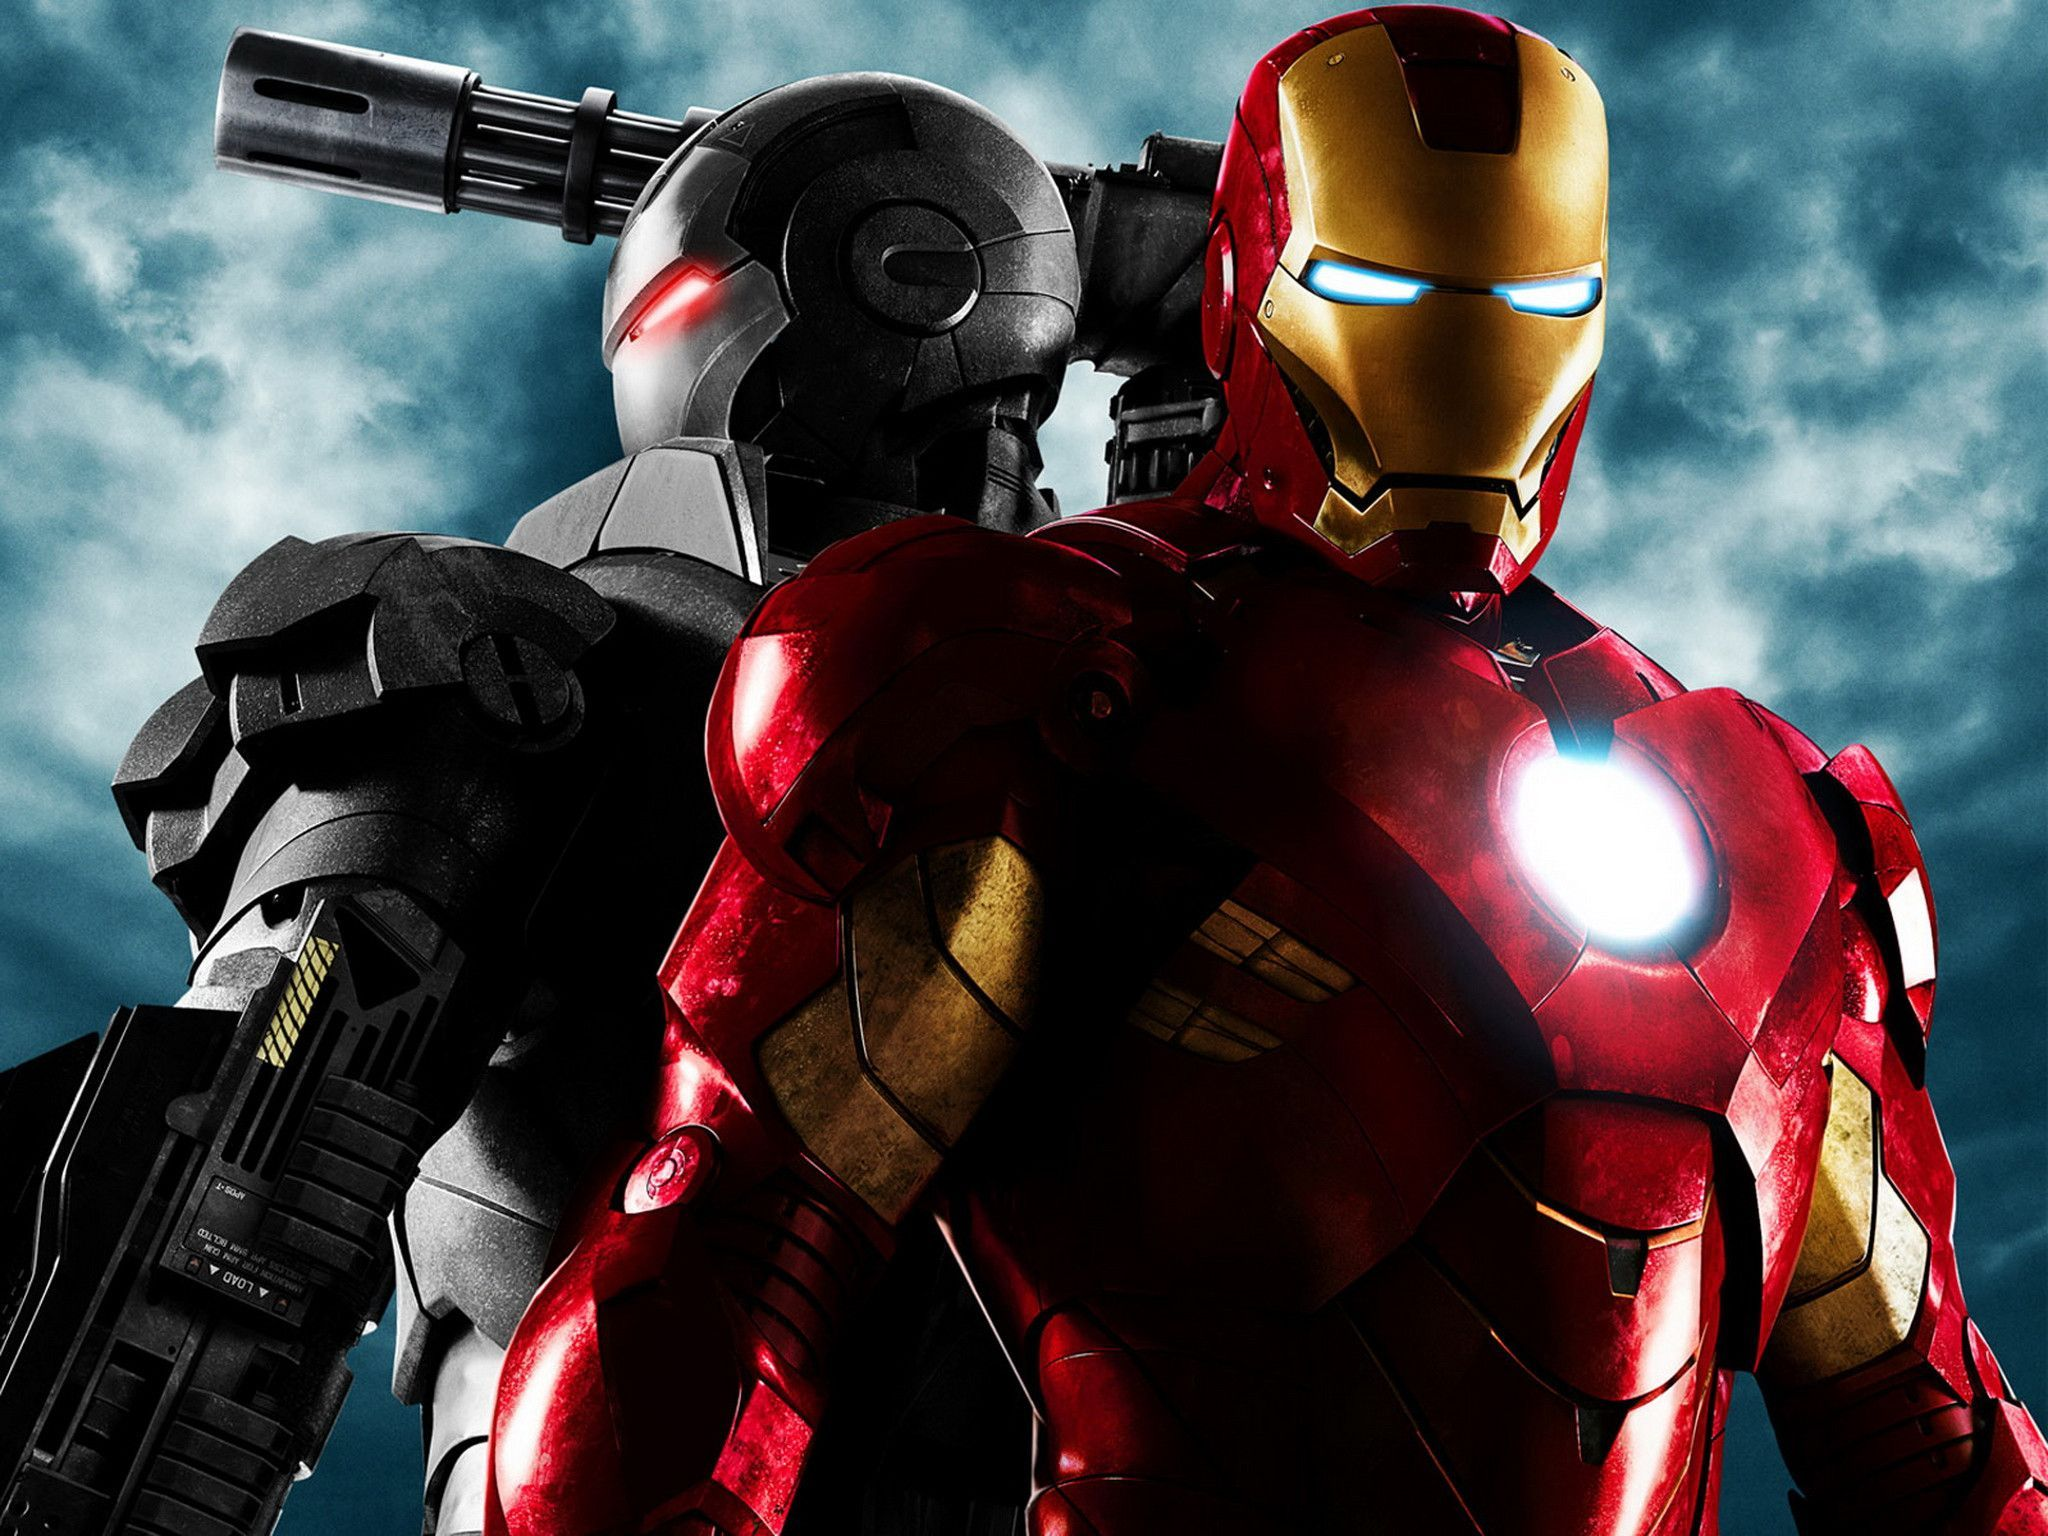 iron man wallpapers for free download in hd 1920×1080 iron man hd